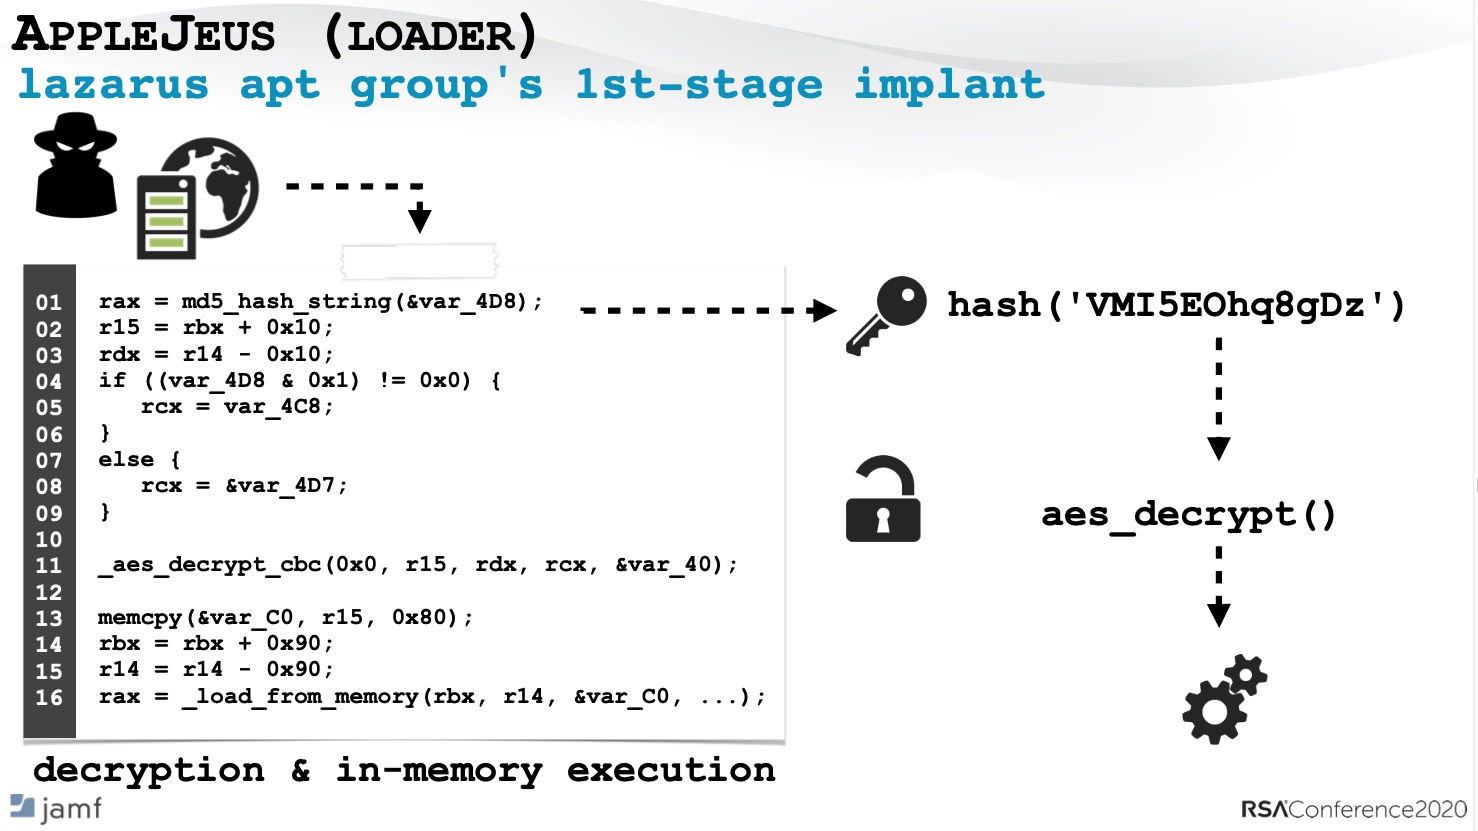 The disassembled code AppleJeus.c used to decrypt, load, and execute (in memory) the received second-stage payload.